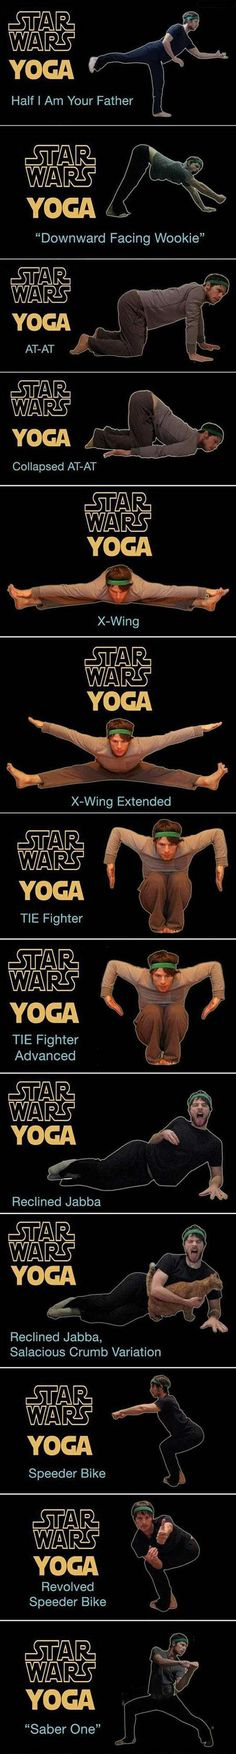 Star Wars Yoga Is Best Yoga!